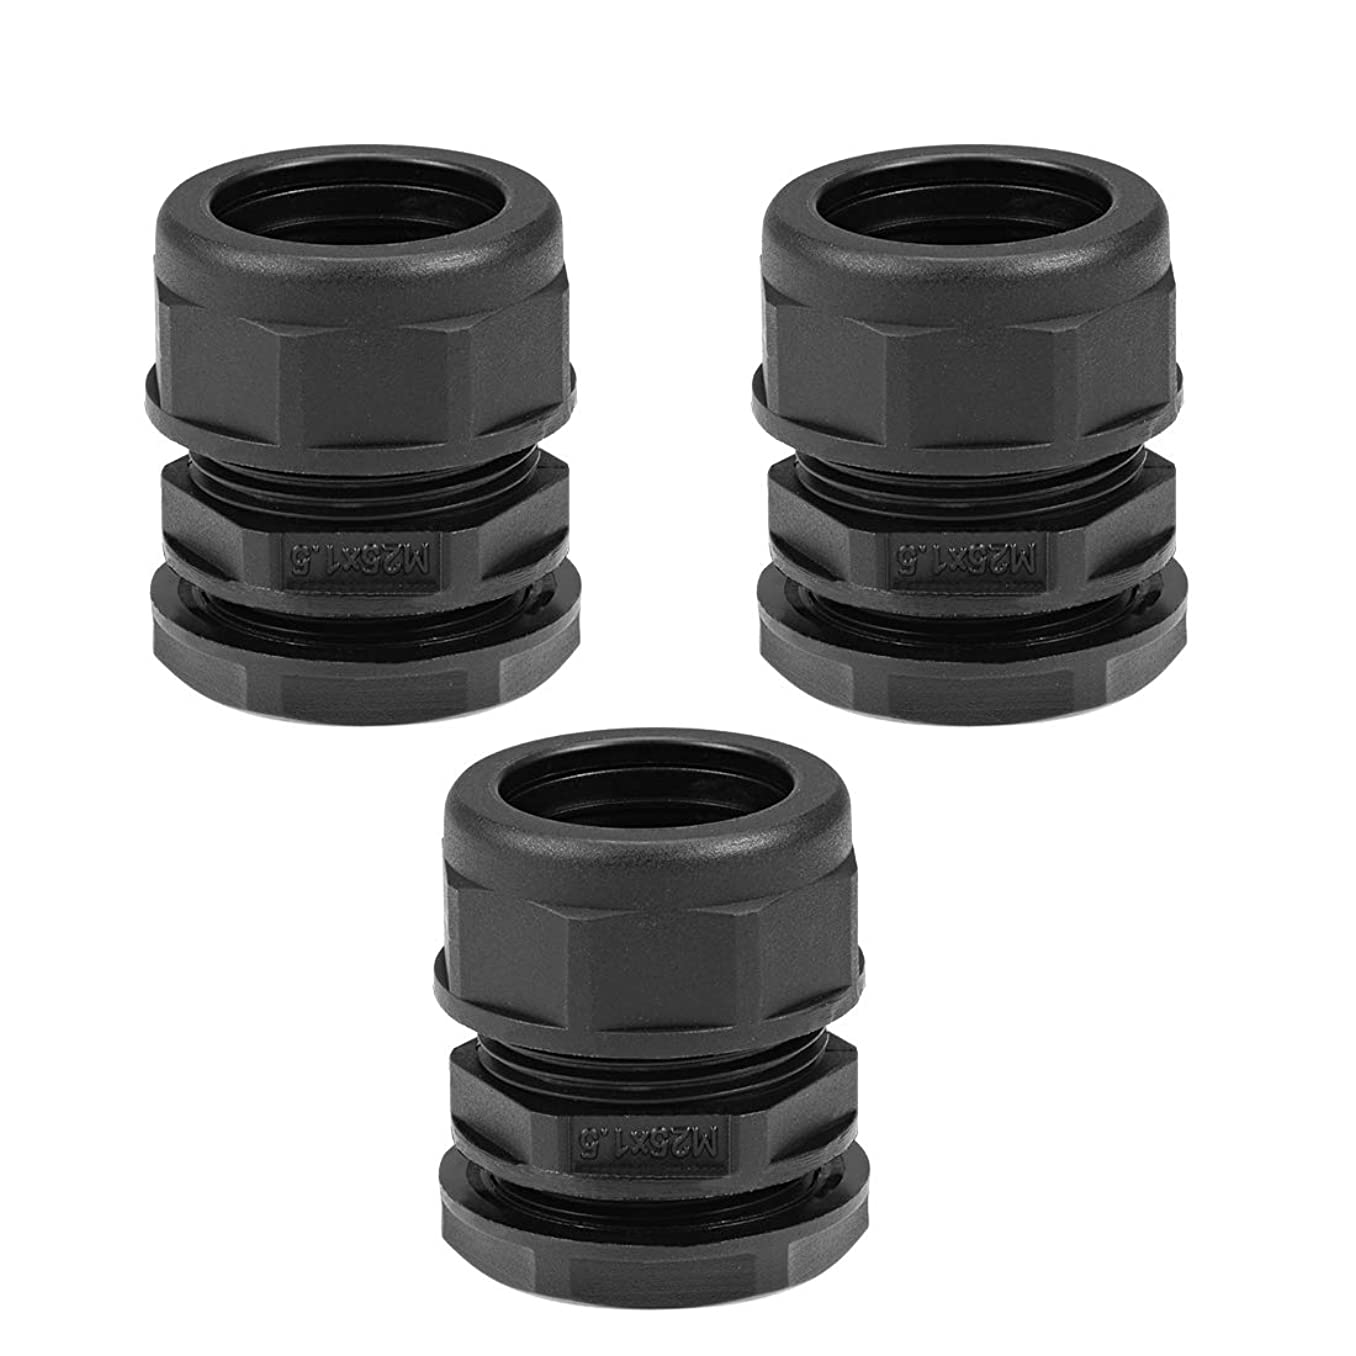 uxcell Waterproof Cable Gland Corrugated Tube Joint AD21.2 Adjustable Locknut Pipe Clamp 3pcs